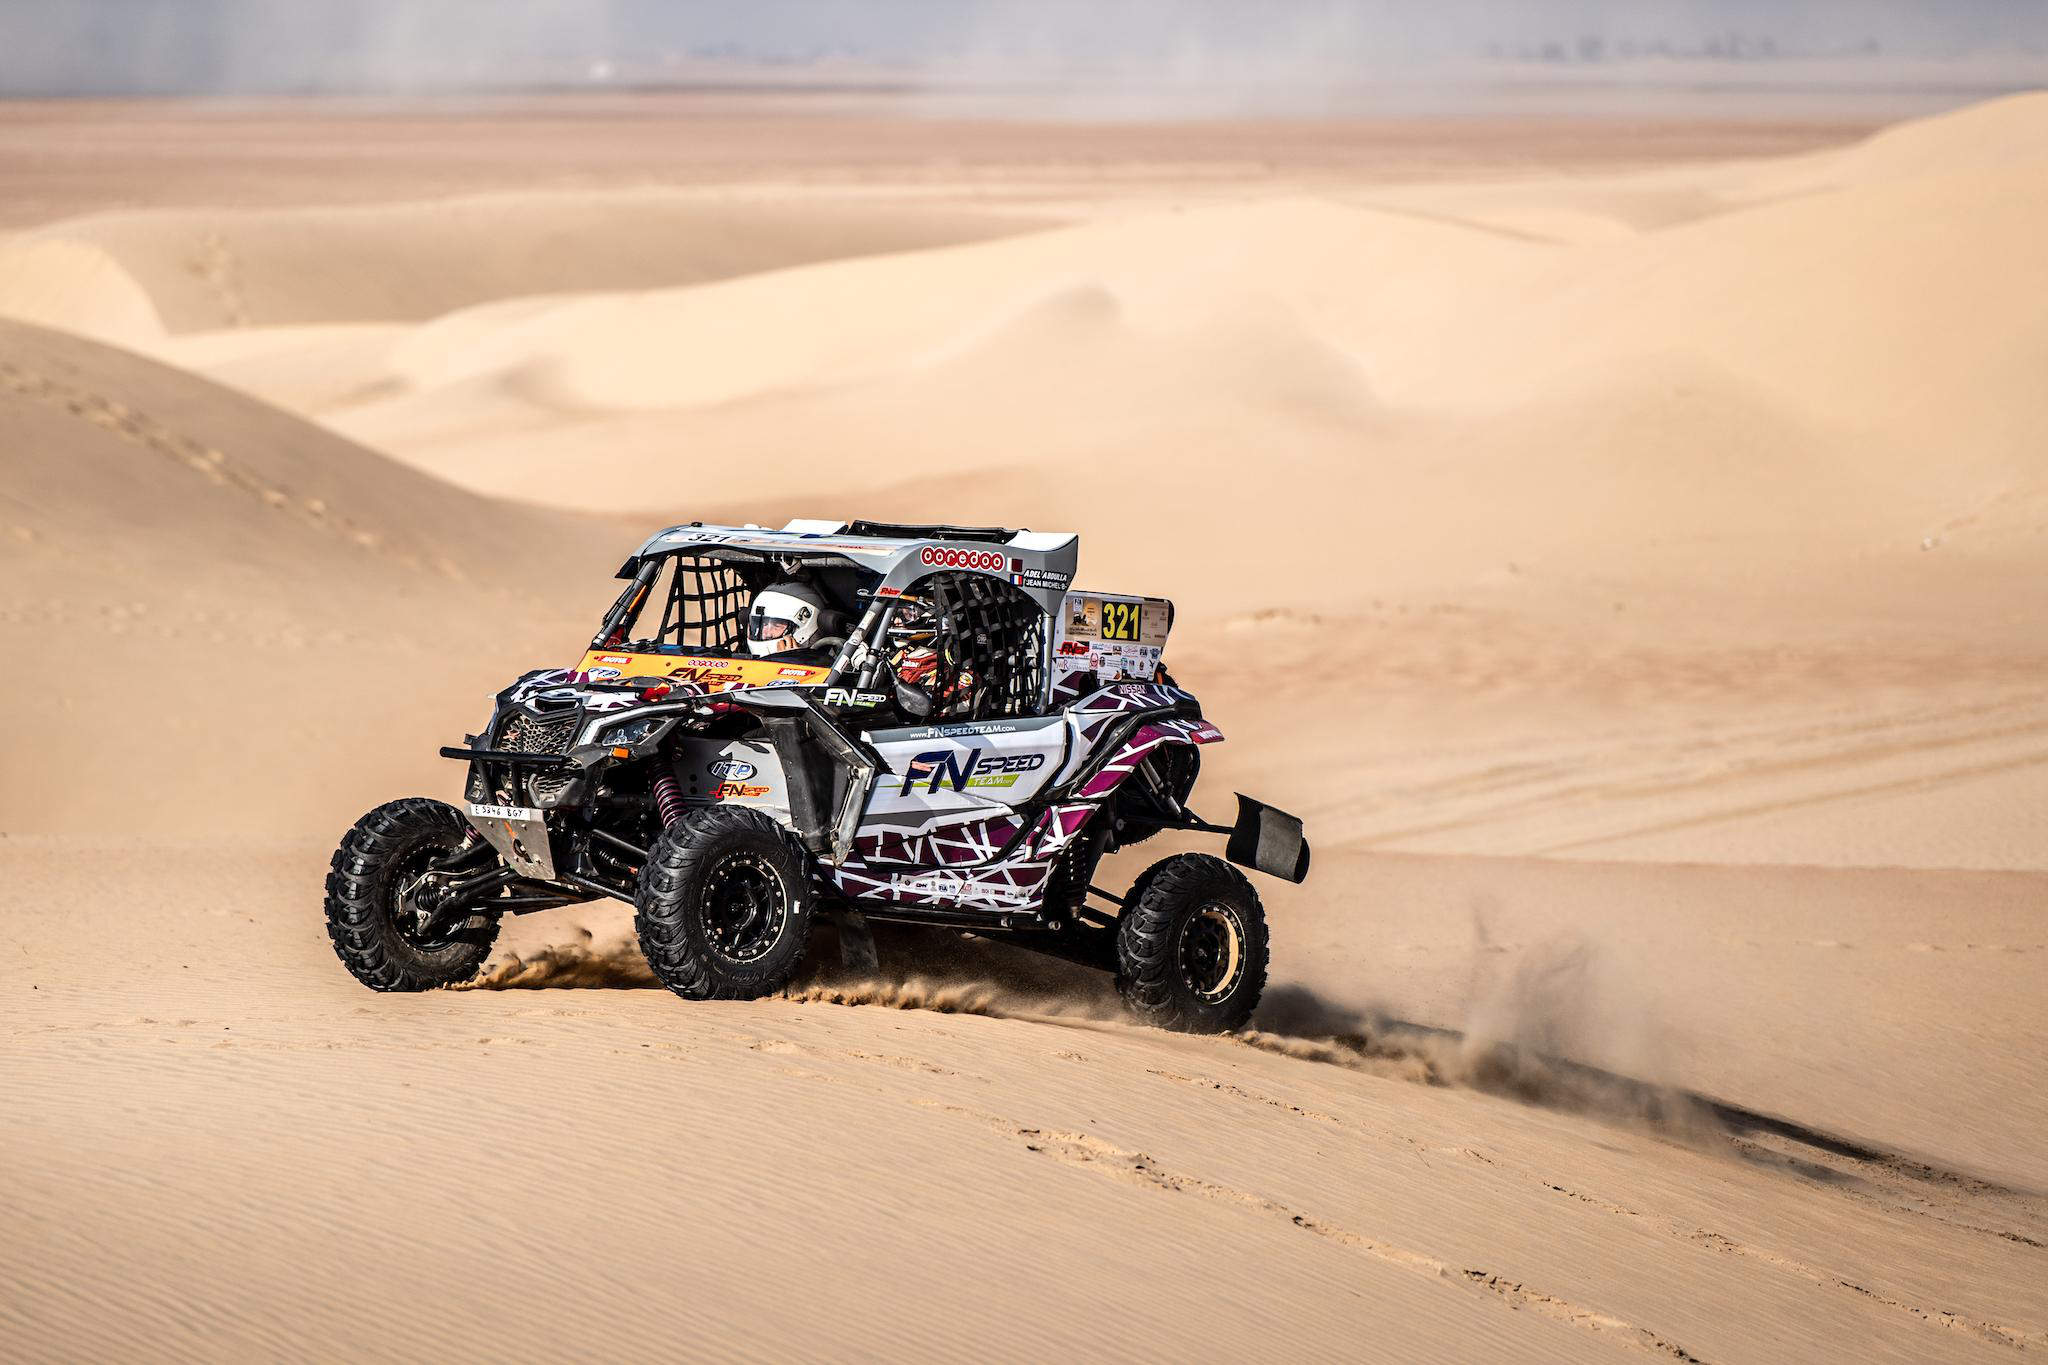 Adel Abdulla, Dubai International Baja 2019